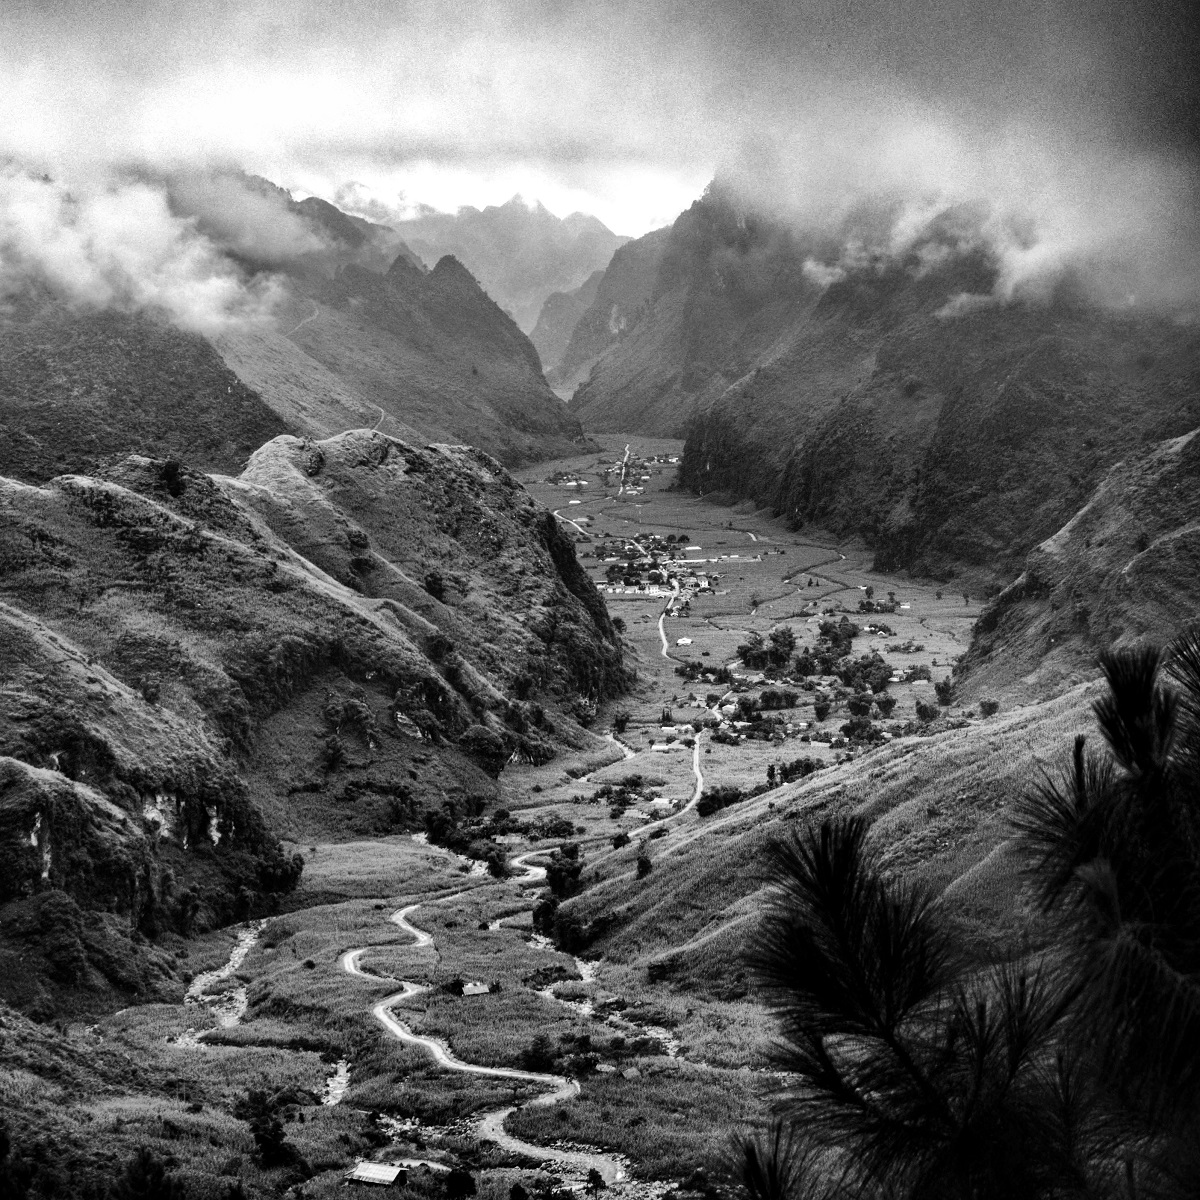 Trinh, 29, created a project named 'Come from Vietnam' that showcases his home countrys beautiful landscapes from north to south. In the picture above, a mountain scene from Ha Giang, a province in the far north, shows a dramatic gorge with a narrow trail that seems endless.